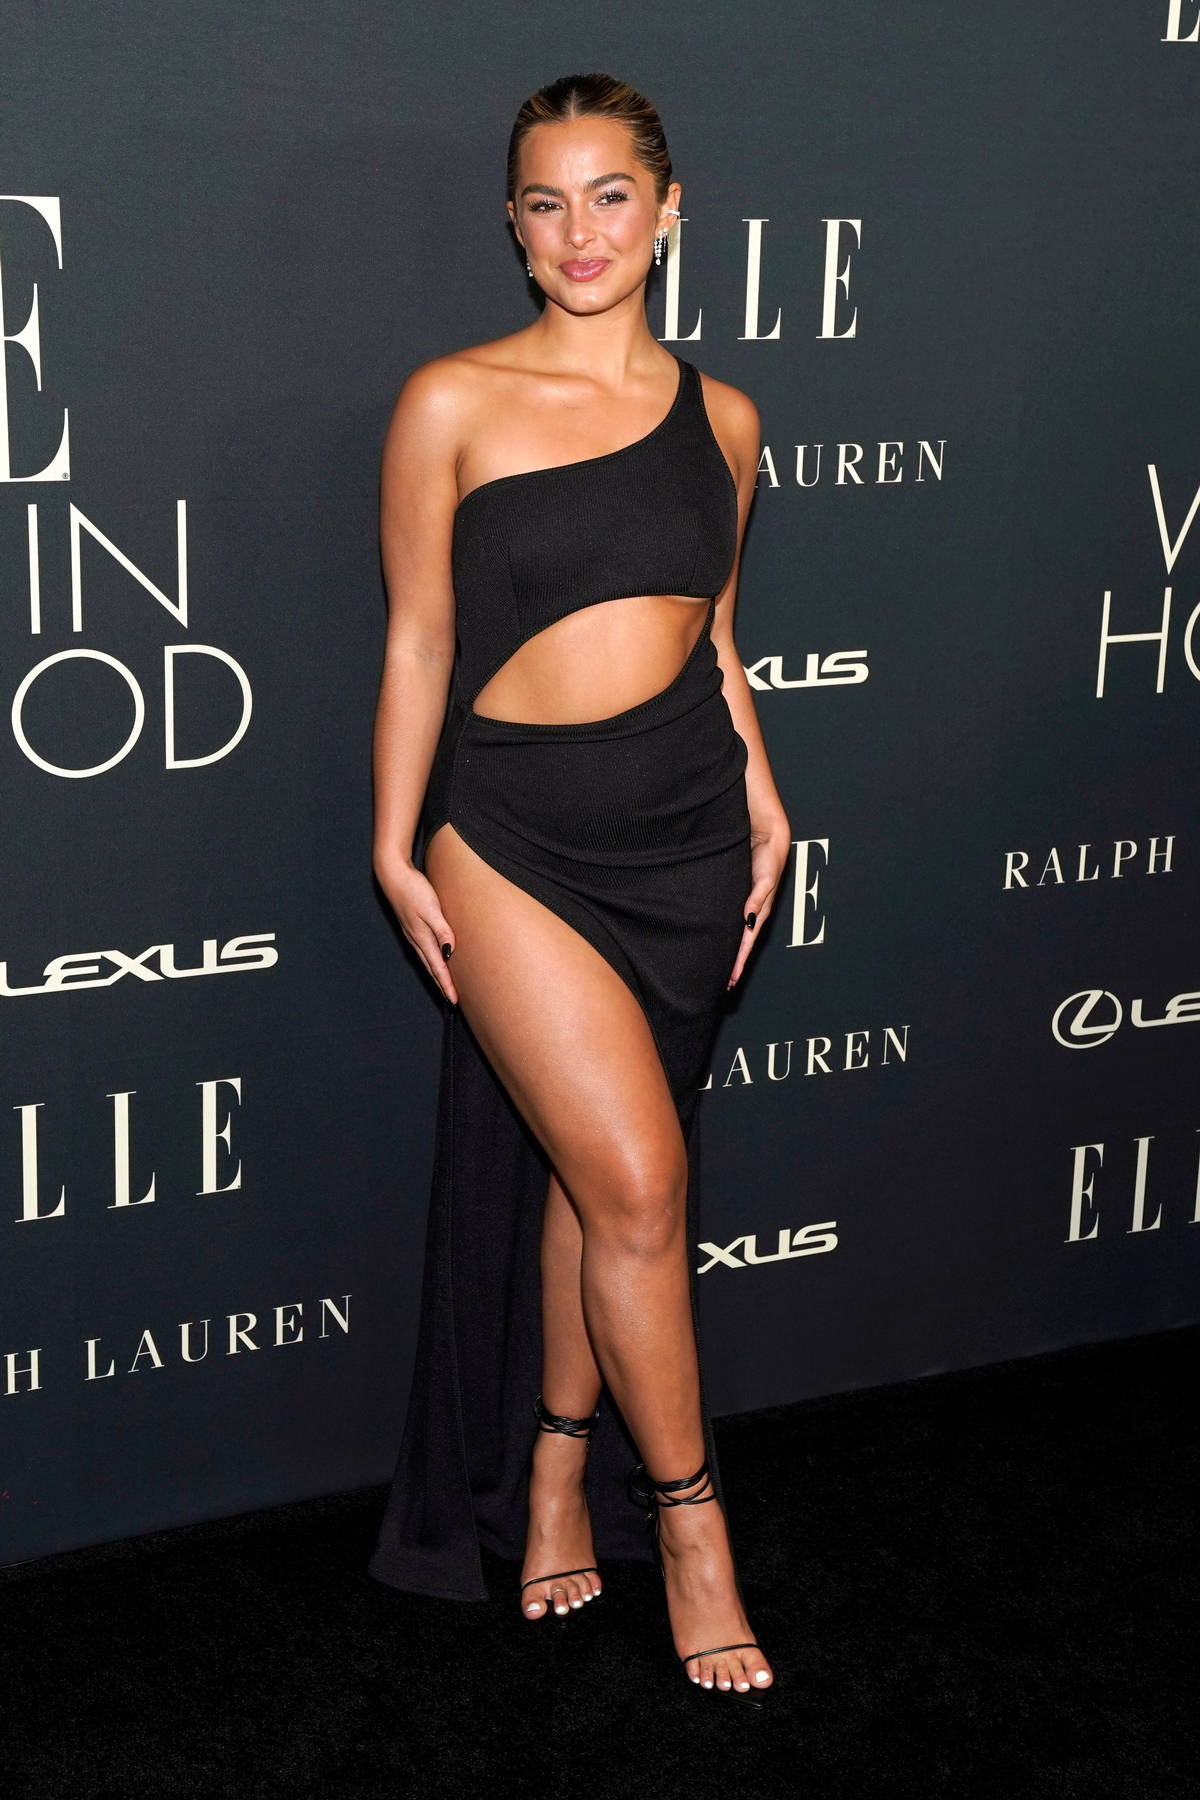 Addison Rae attends ELLE's 27th Annual Women In Hollywood Celebration in Los Angeles